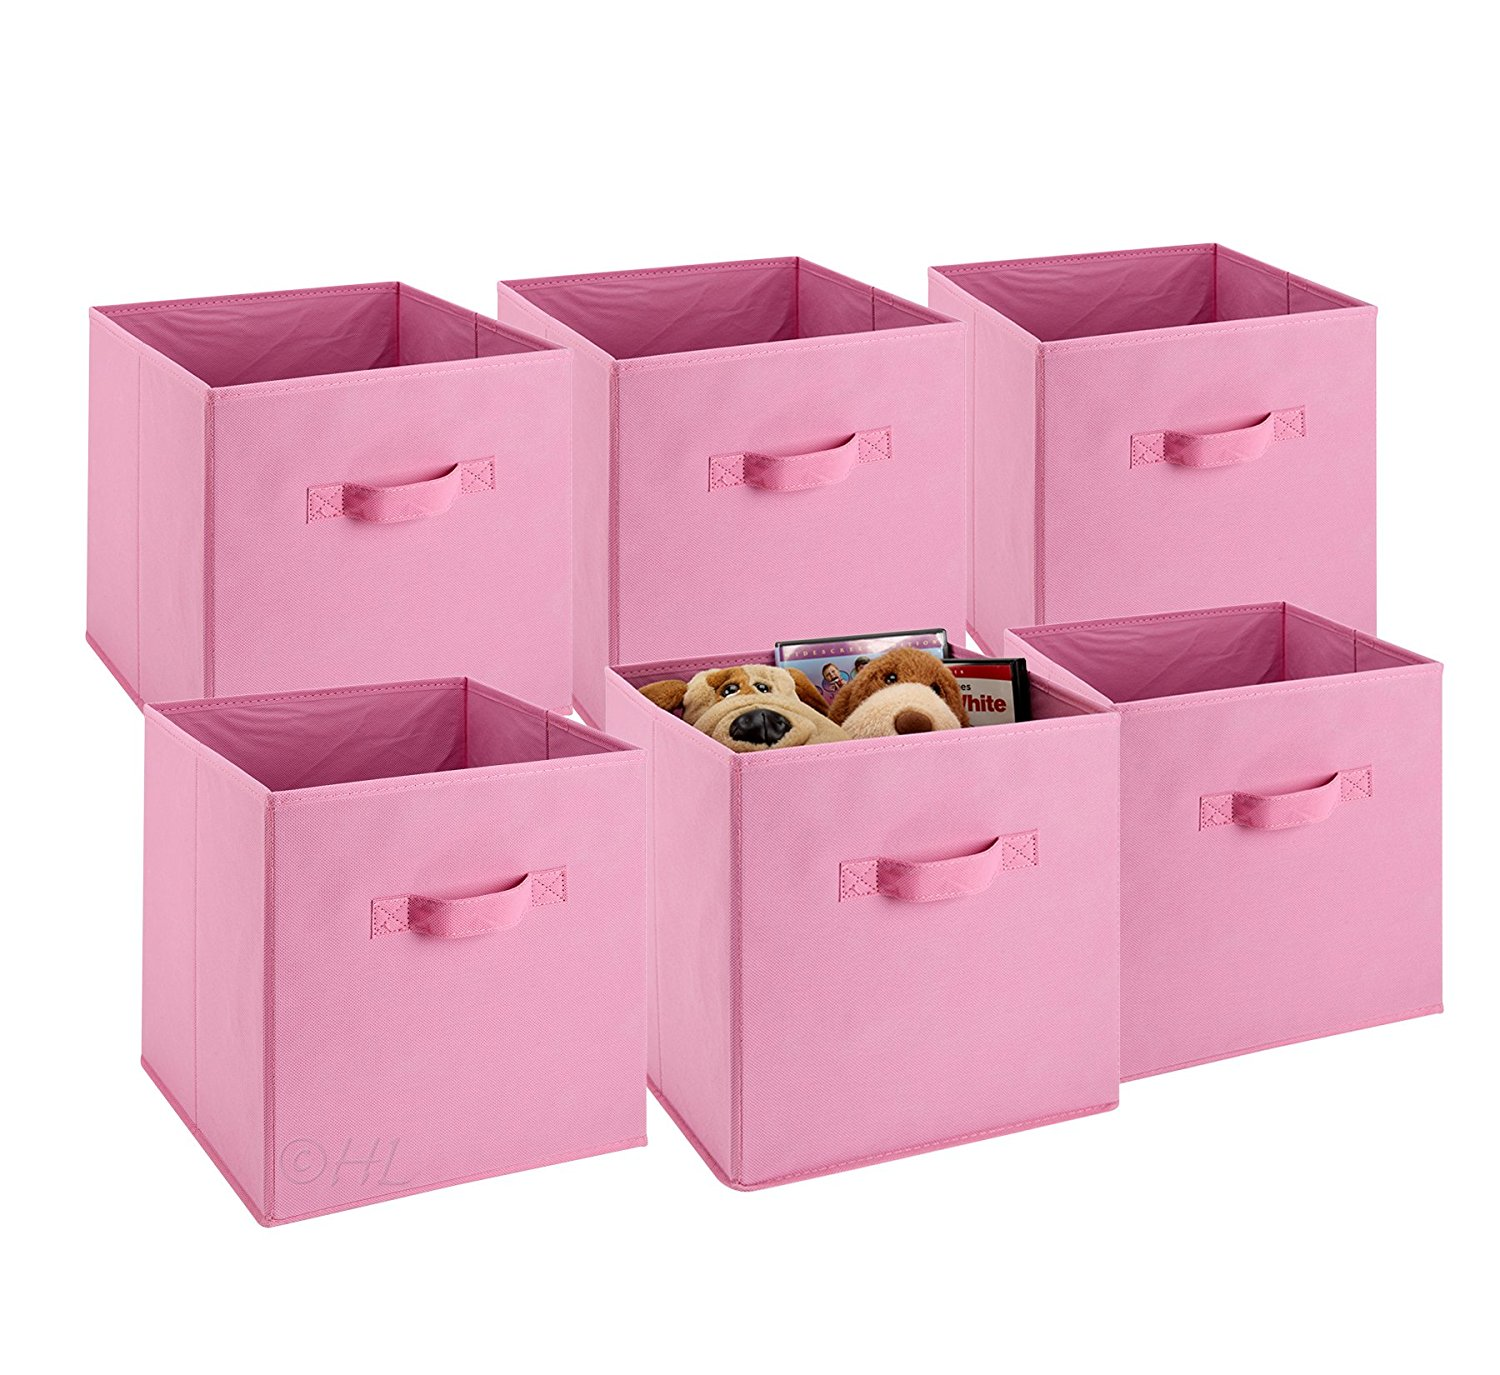 Foldable Cube Storage Bins - 6 Pack - These Decorative Fabric Storage Cubes are Collapsible and Great Organizer for Shelf, Closet or Underbed. Convenient for Clothes or Kids Toy Storage Unit (Pink)